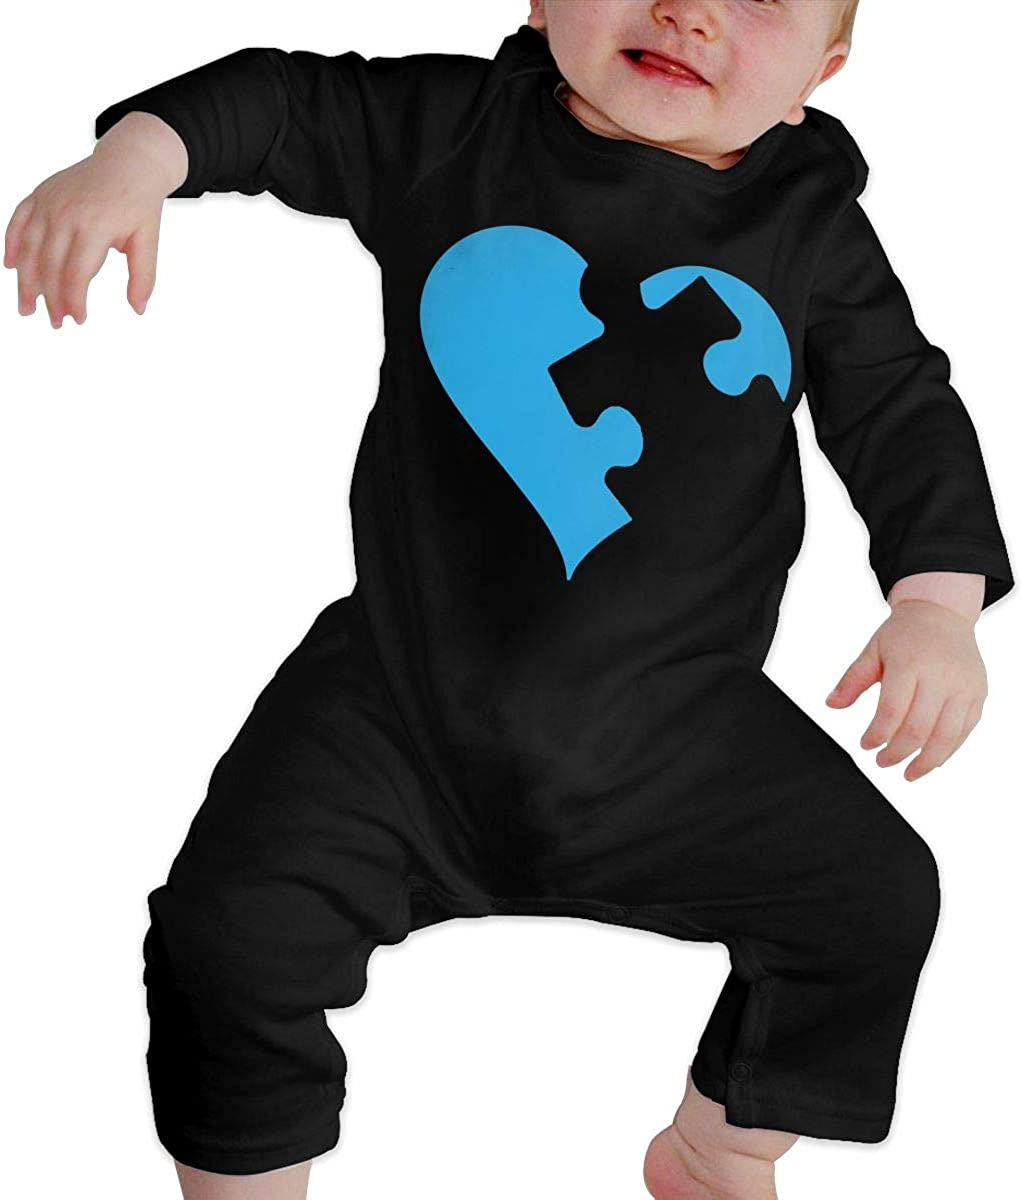 Autism Love Organic One-Piece Bodysuits Coverall Outfits Baby Boys Romper Jumpsuit